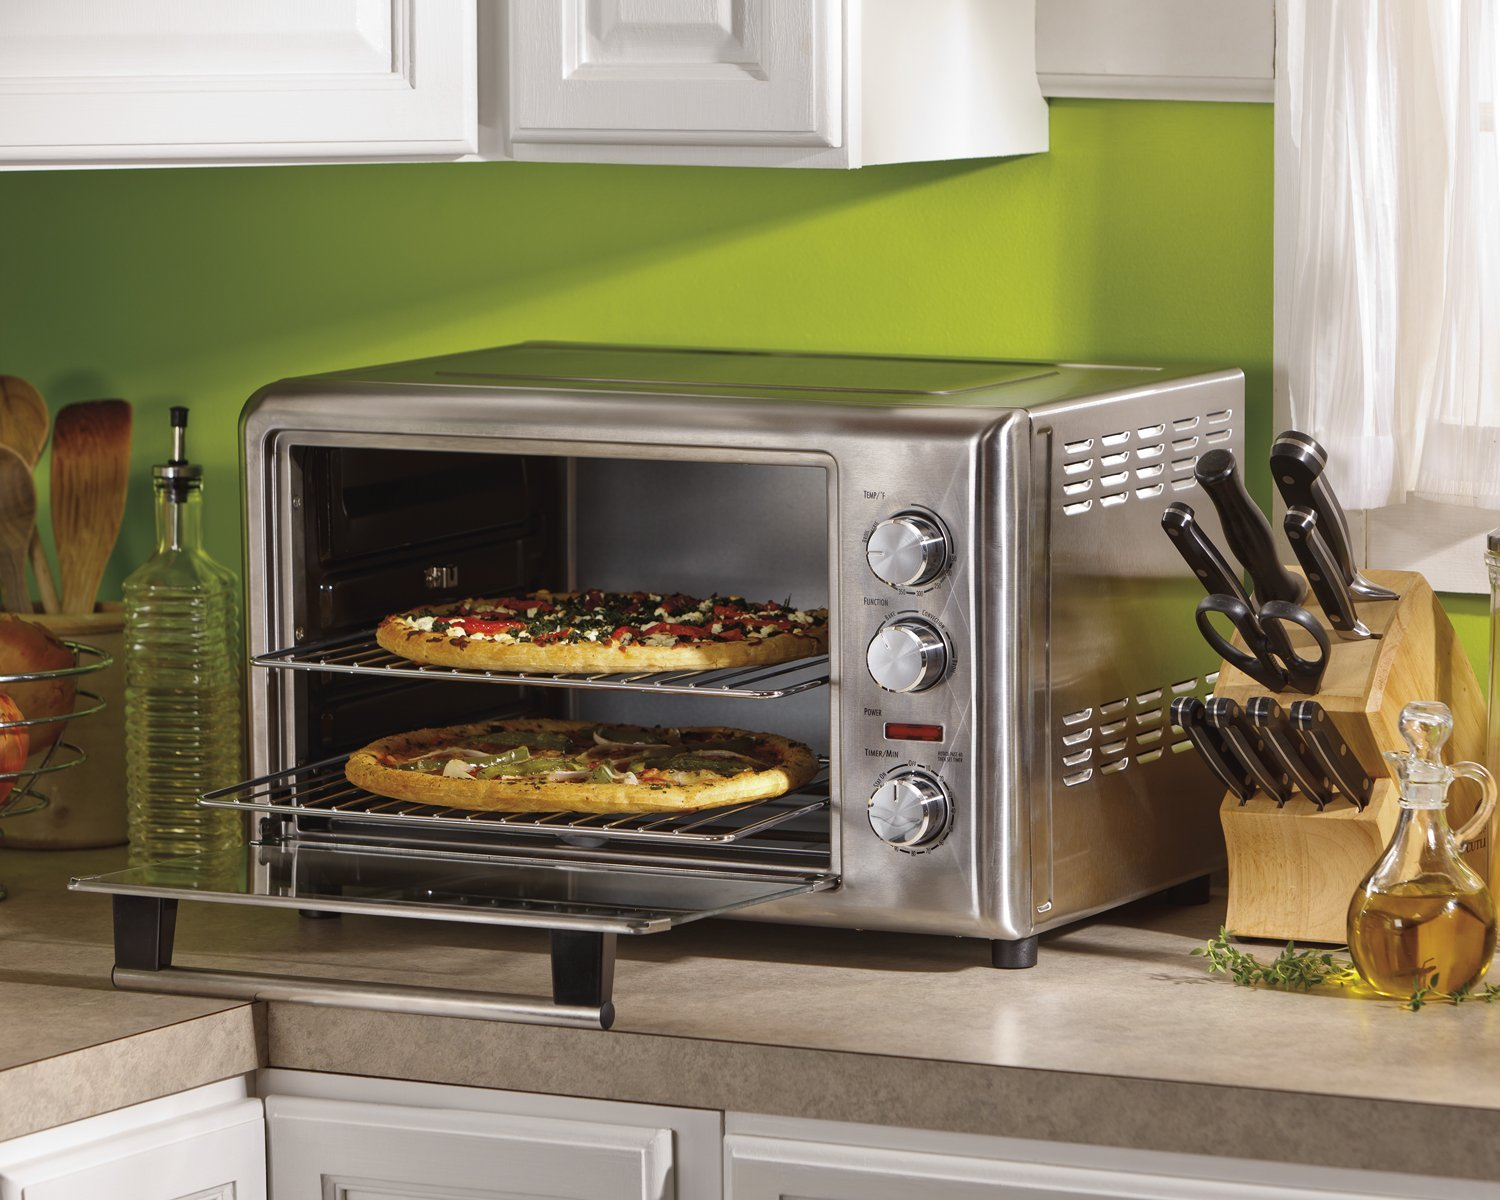 personal blog digital elite convection oven tampa prod countertop review the countertops kenmore spin chef